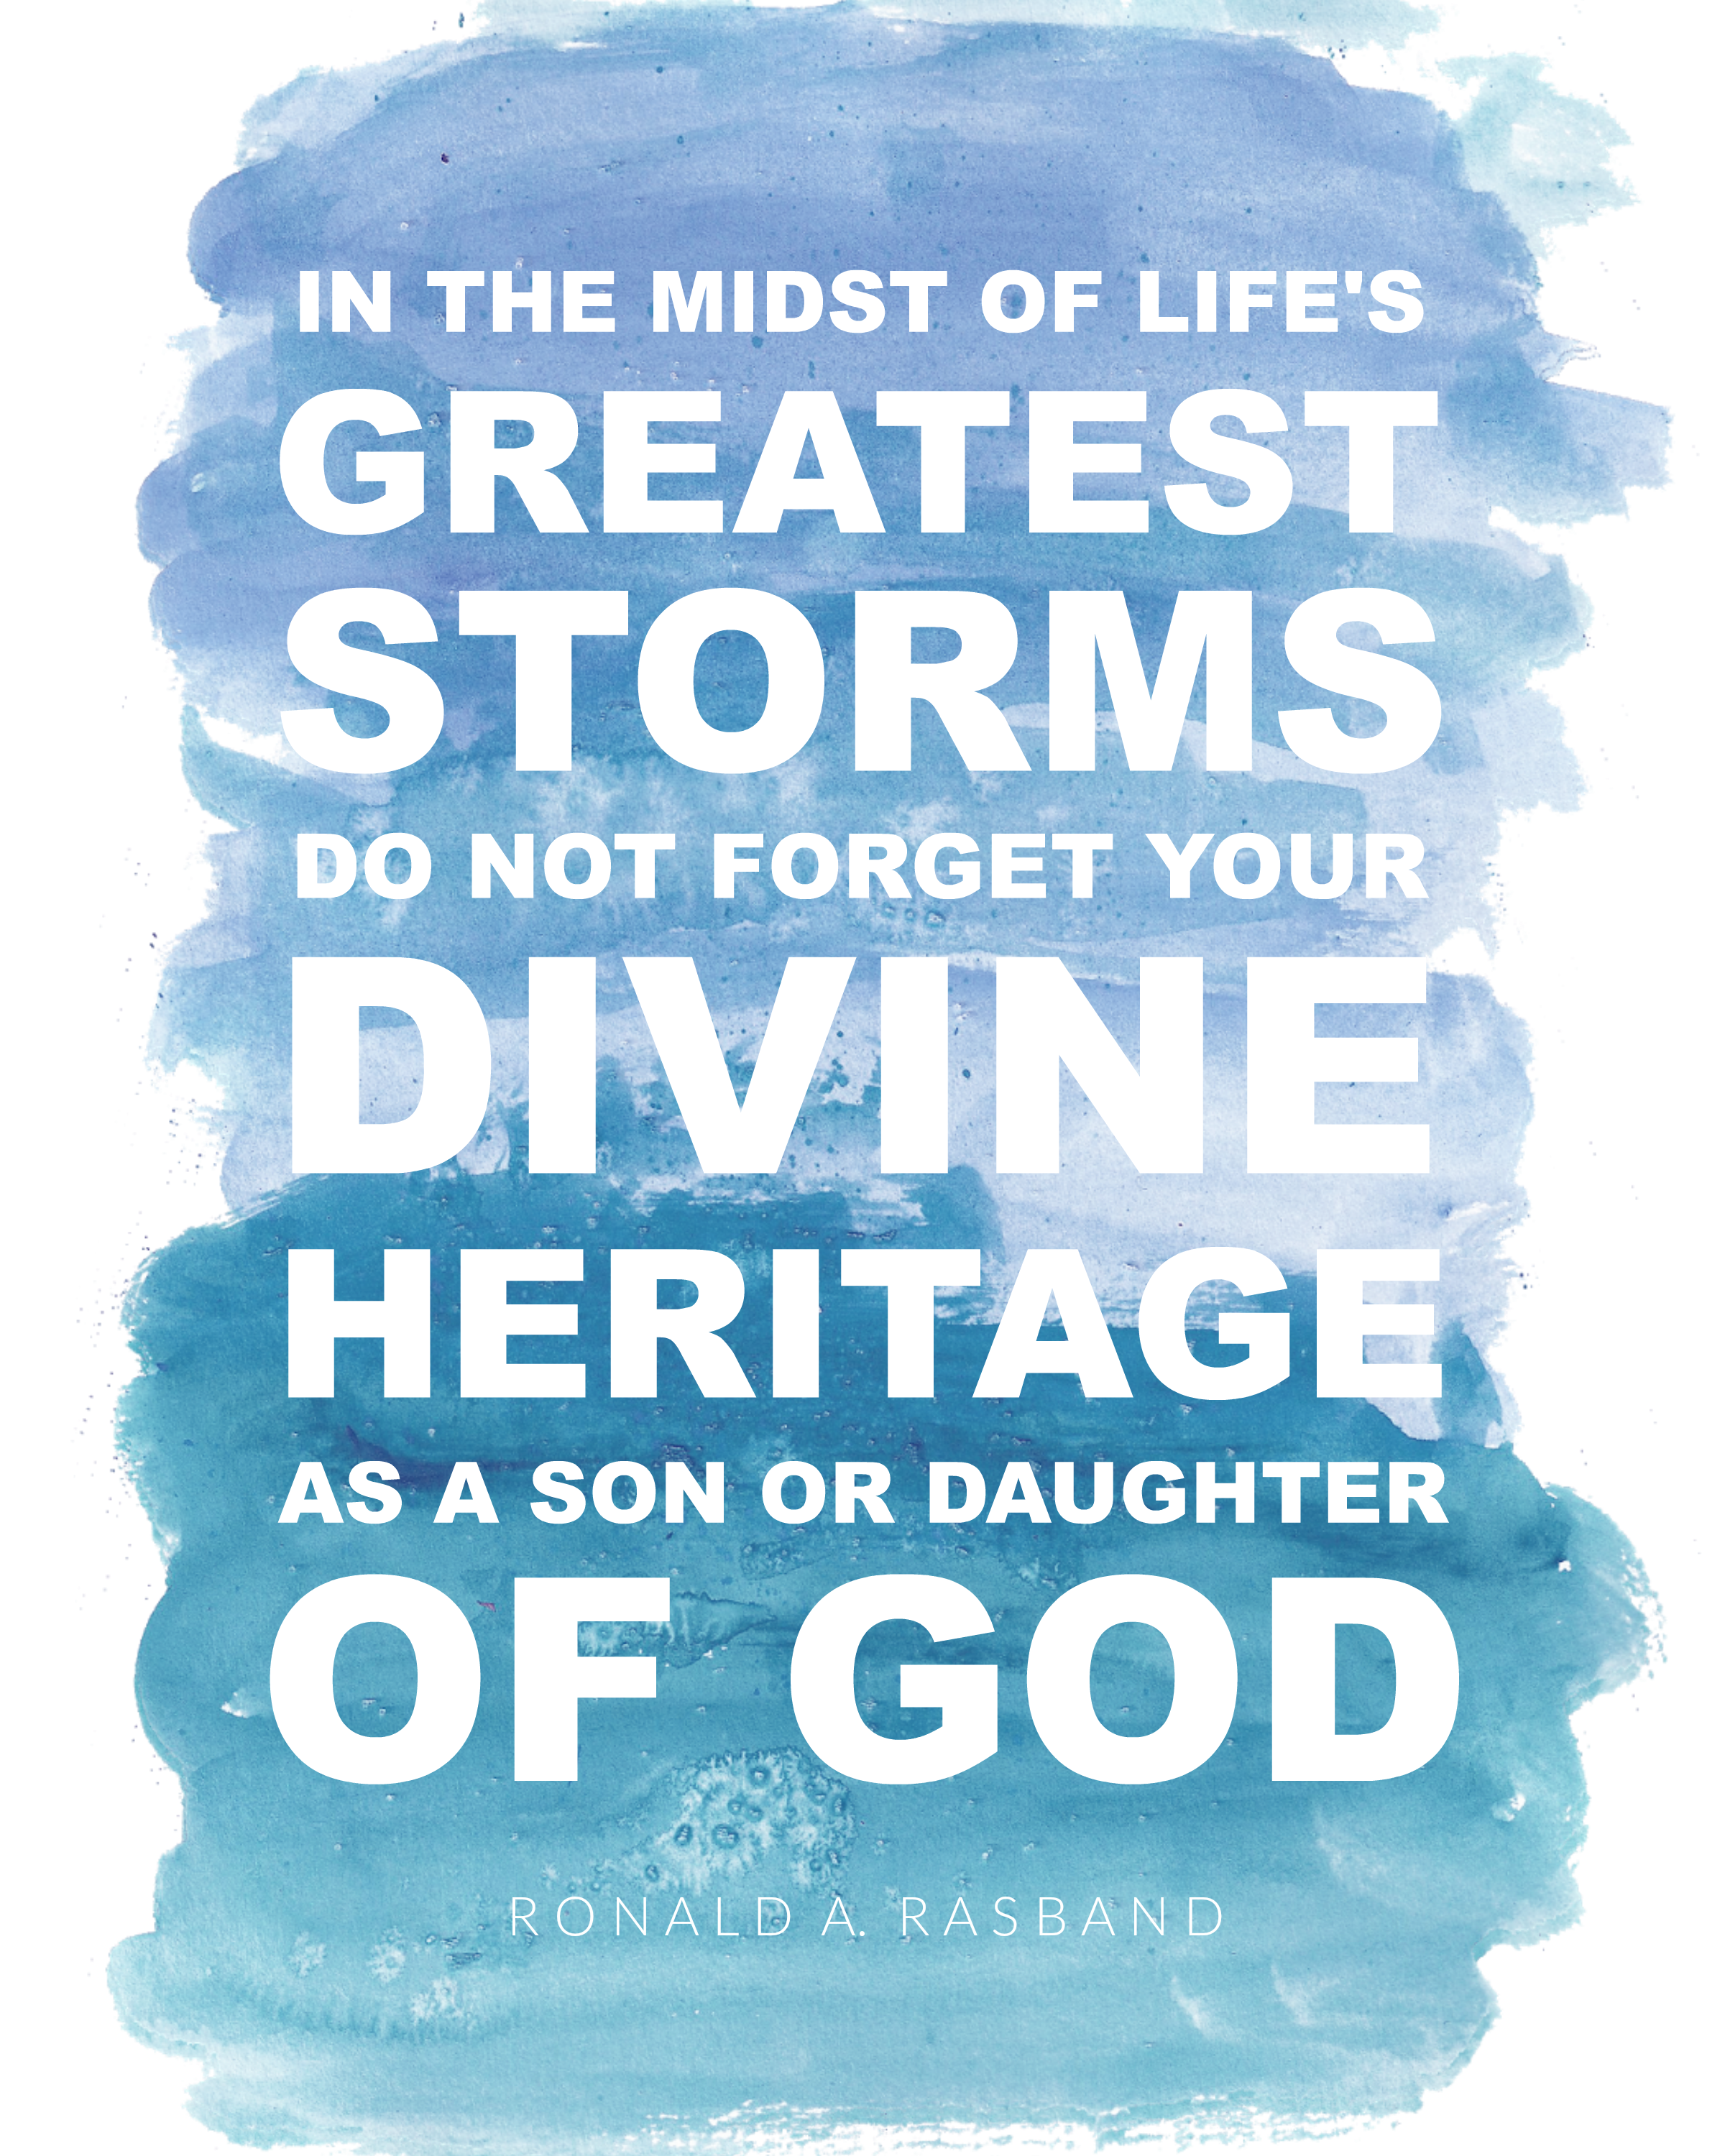 """In the midst of life's greatest storms do not forget you divine heritage as a son or daughter of God."" Ronald A. Rasband 